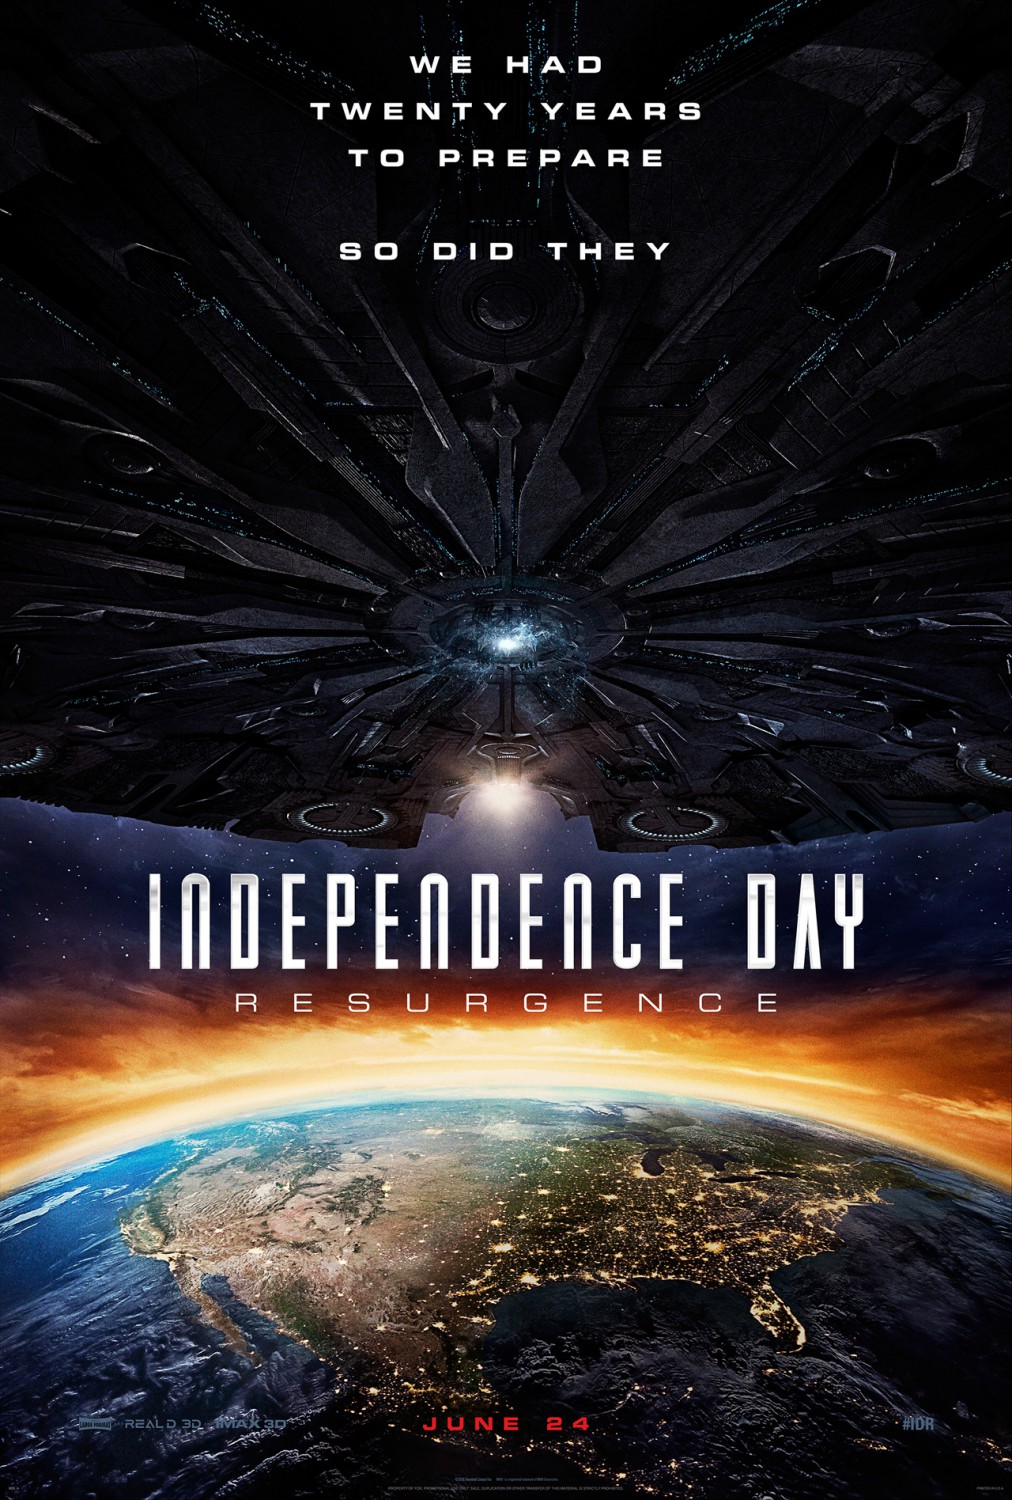 14 - Independence Day Resurgence